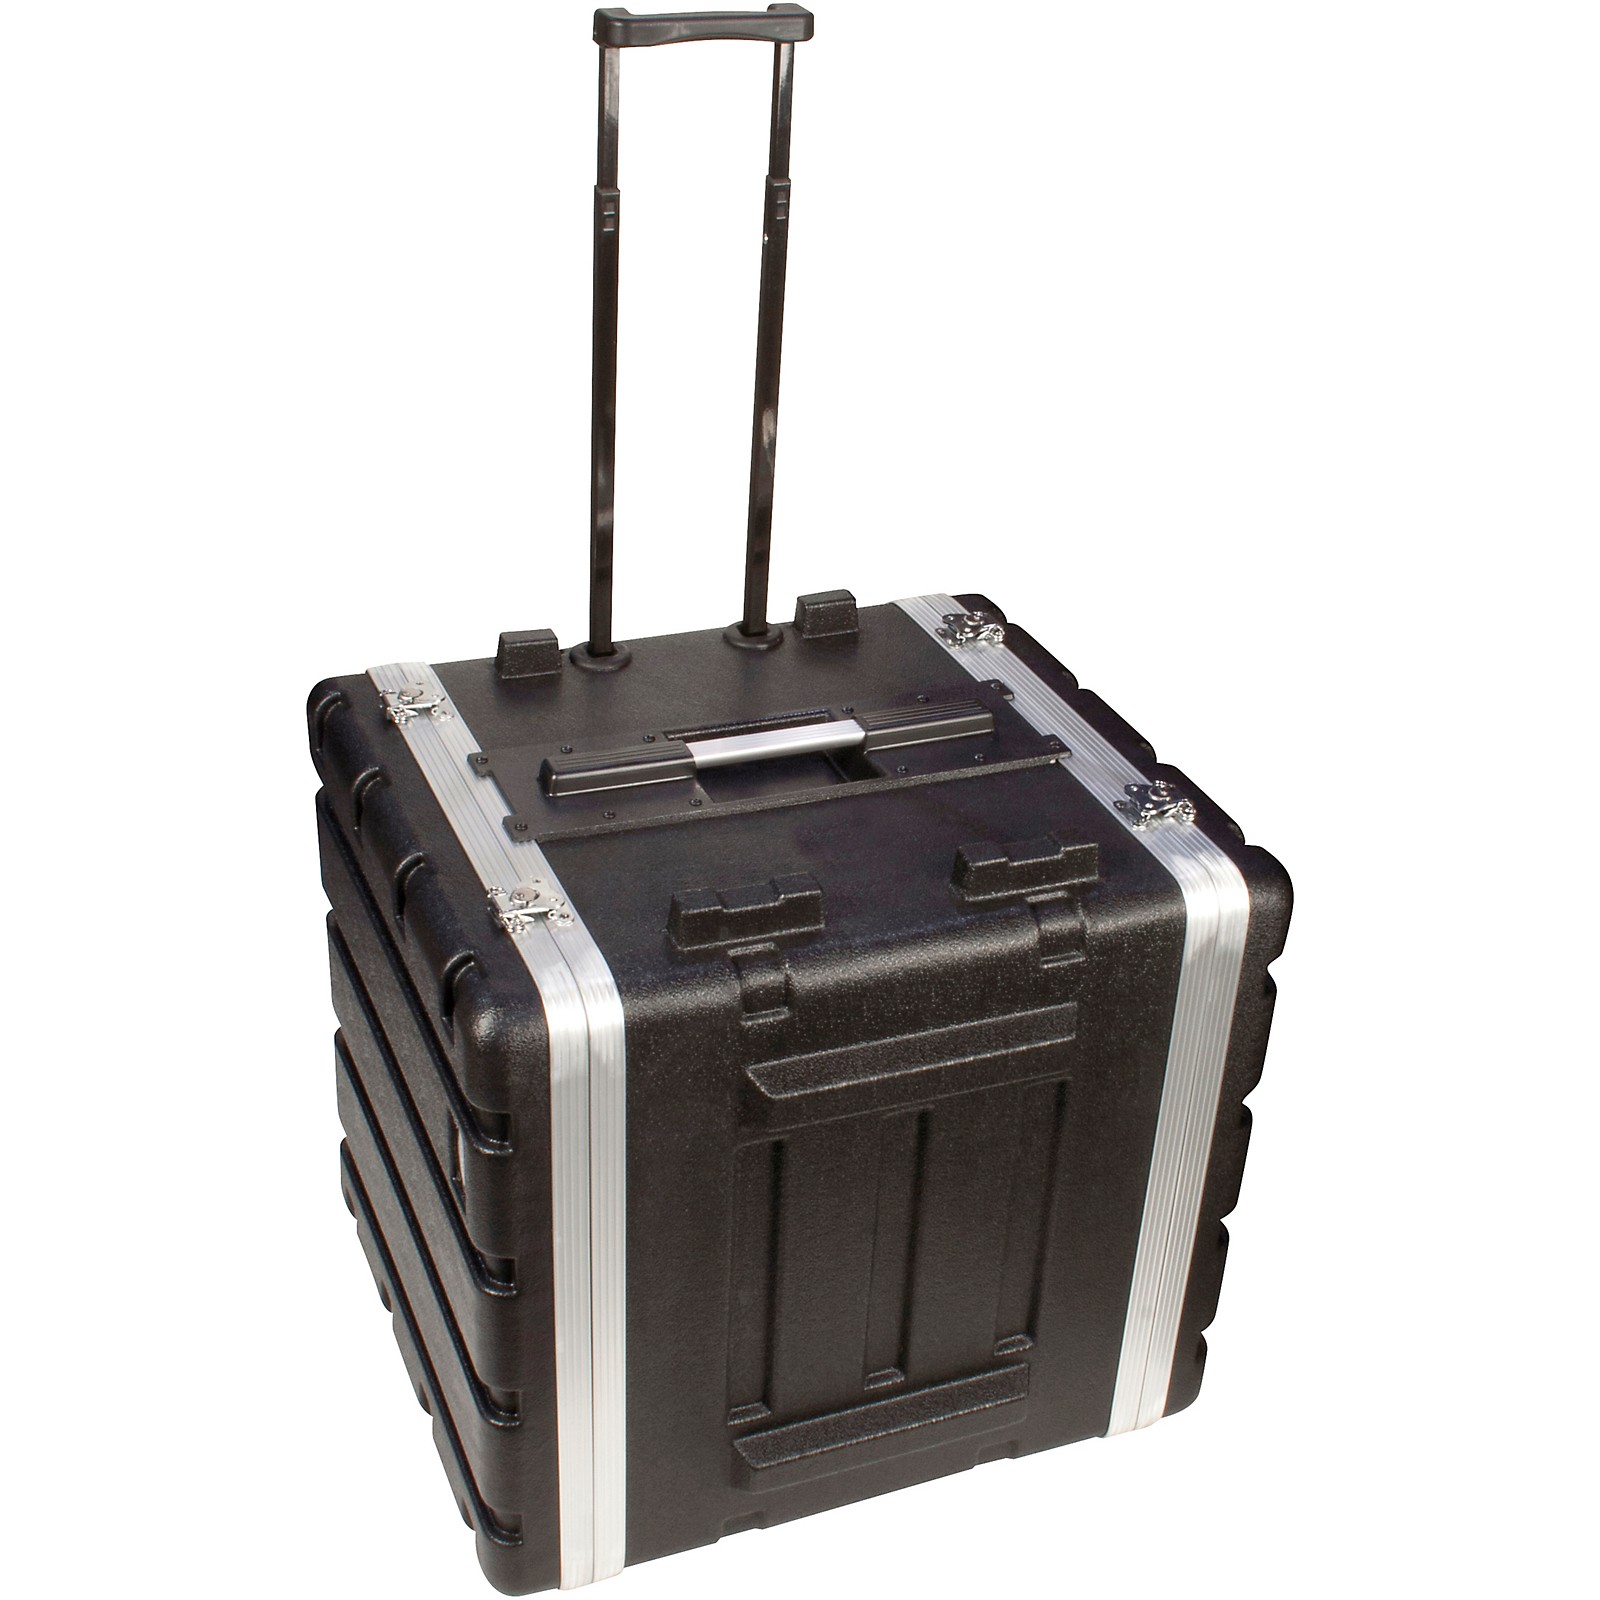 Ultimate Support DuraCase UR-12LTH Rolling 12-Space Rackmount Case